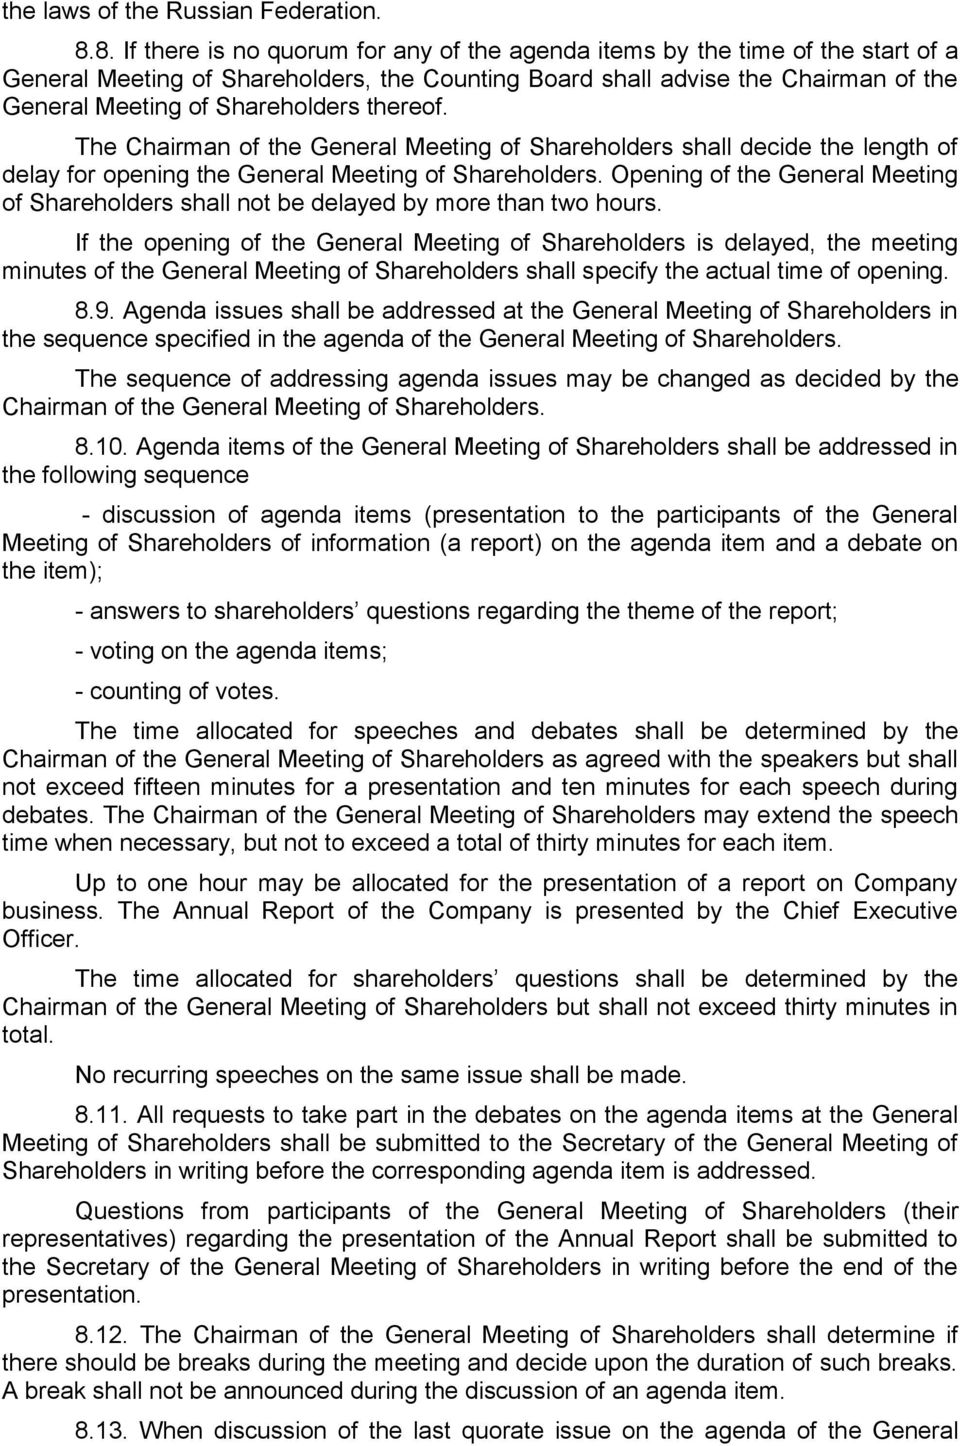 thereof. The Chairman of the General Meeting of Shareholders shall decide the length of delay for opening the General Meeting of Shareholders.